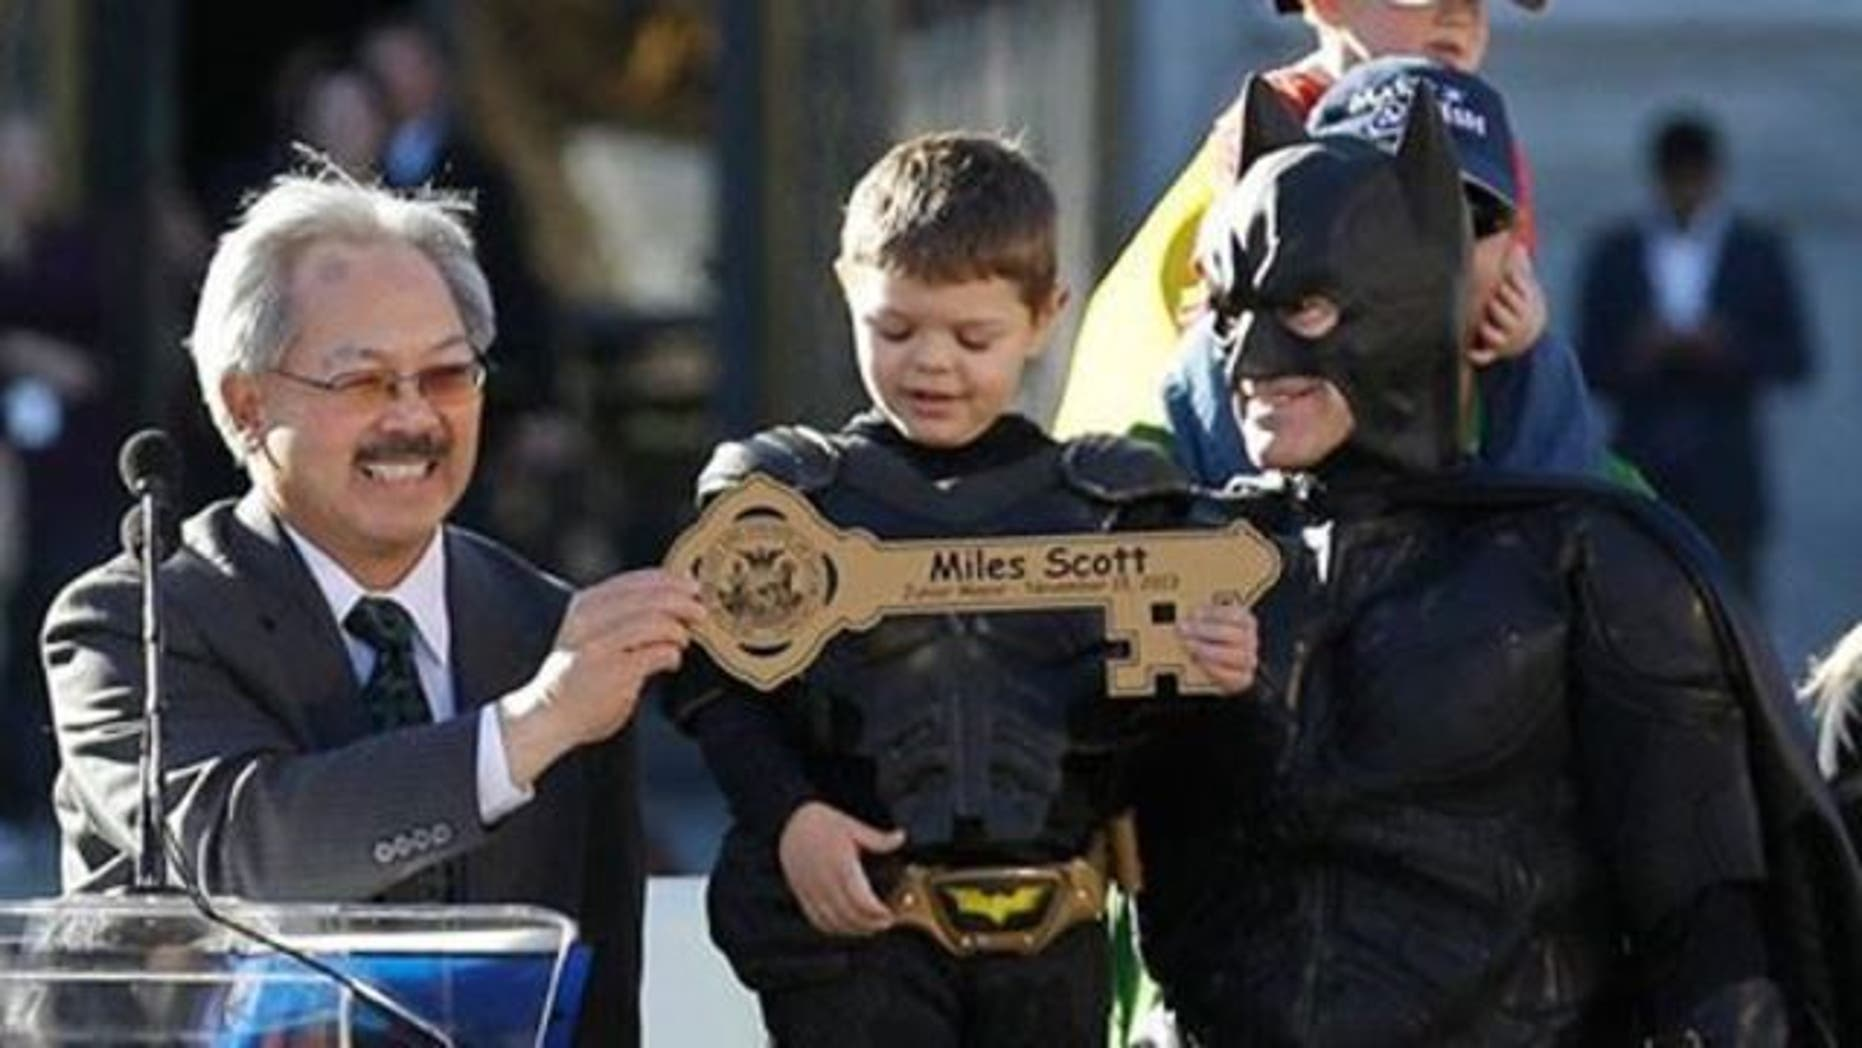 BATKID Celebrates Being Cancer-Free Five Years After He Saved SAN FRANCISCO